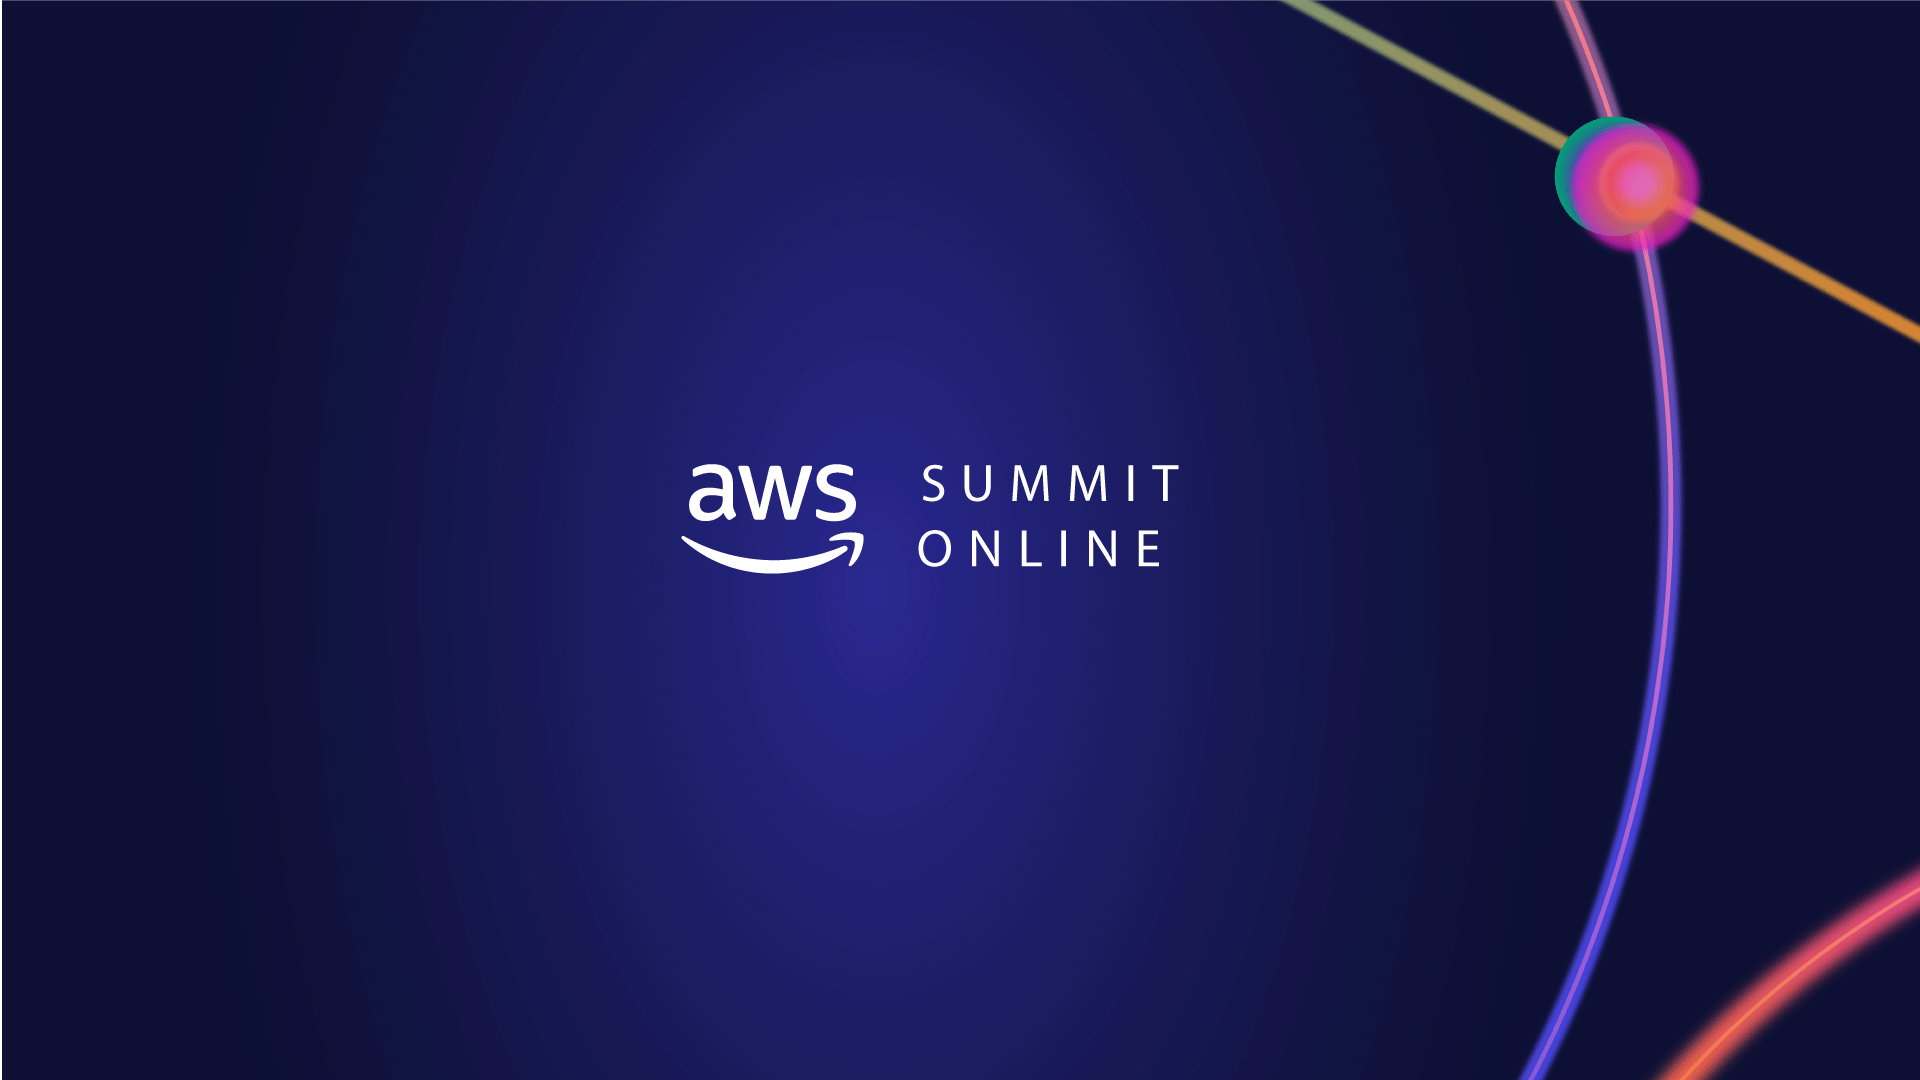 Aprender mais sobre Cloud no AWS Summit Online EMEA